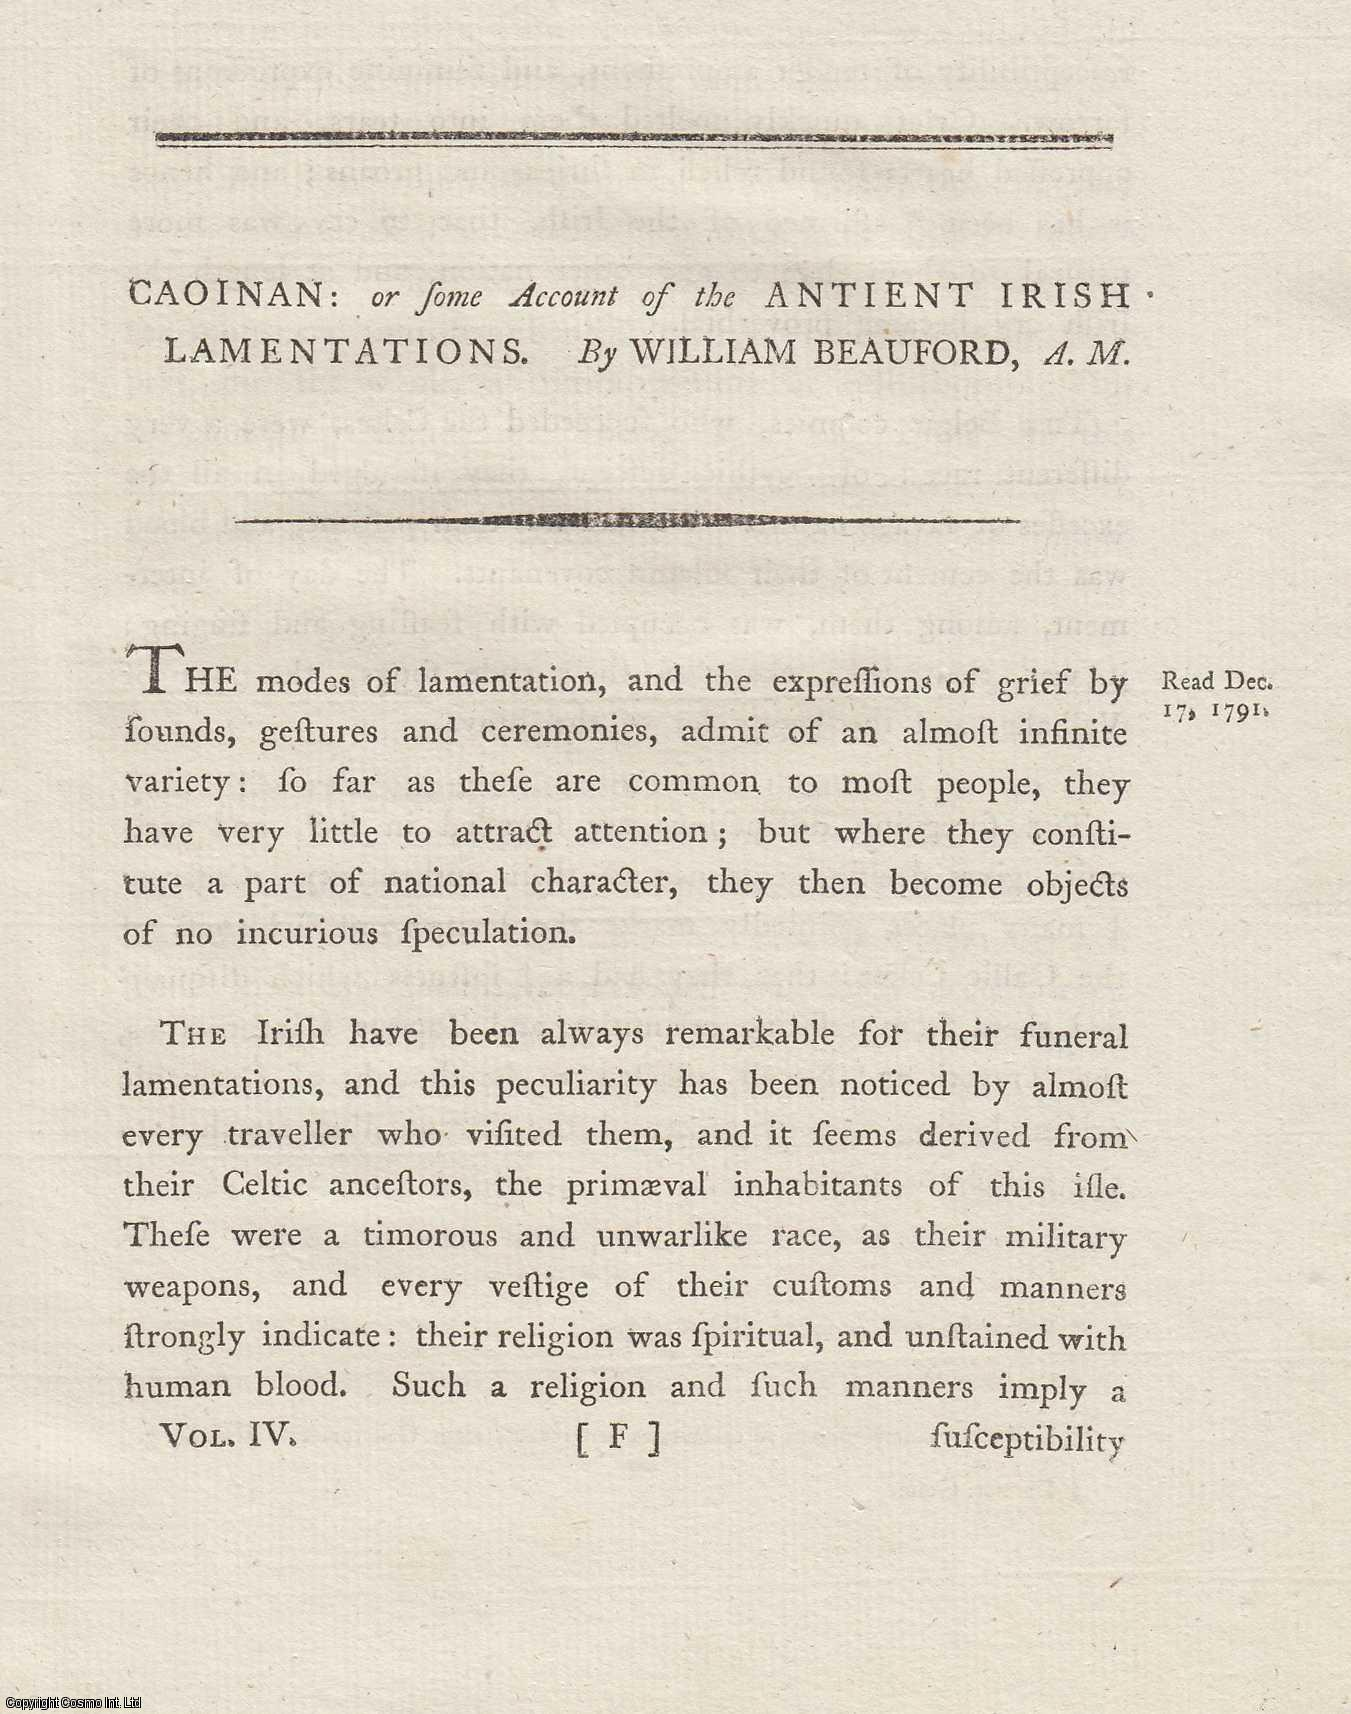 Caoinan, or some Account of the Antient Irish Lamentations.  From Transactions of the Royal Irish Academy., Beauford, William.